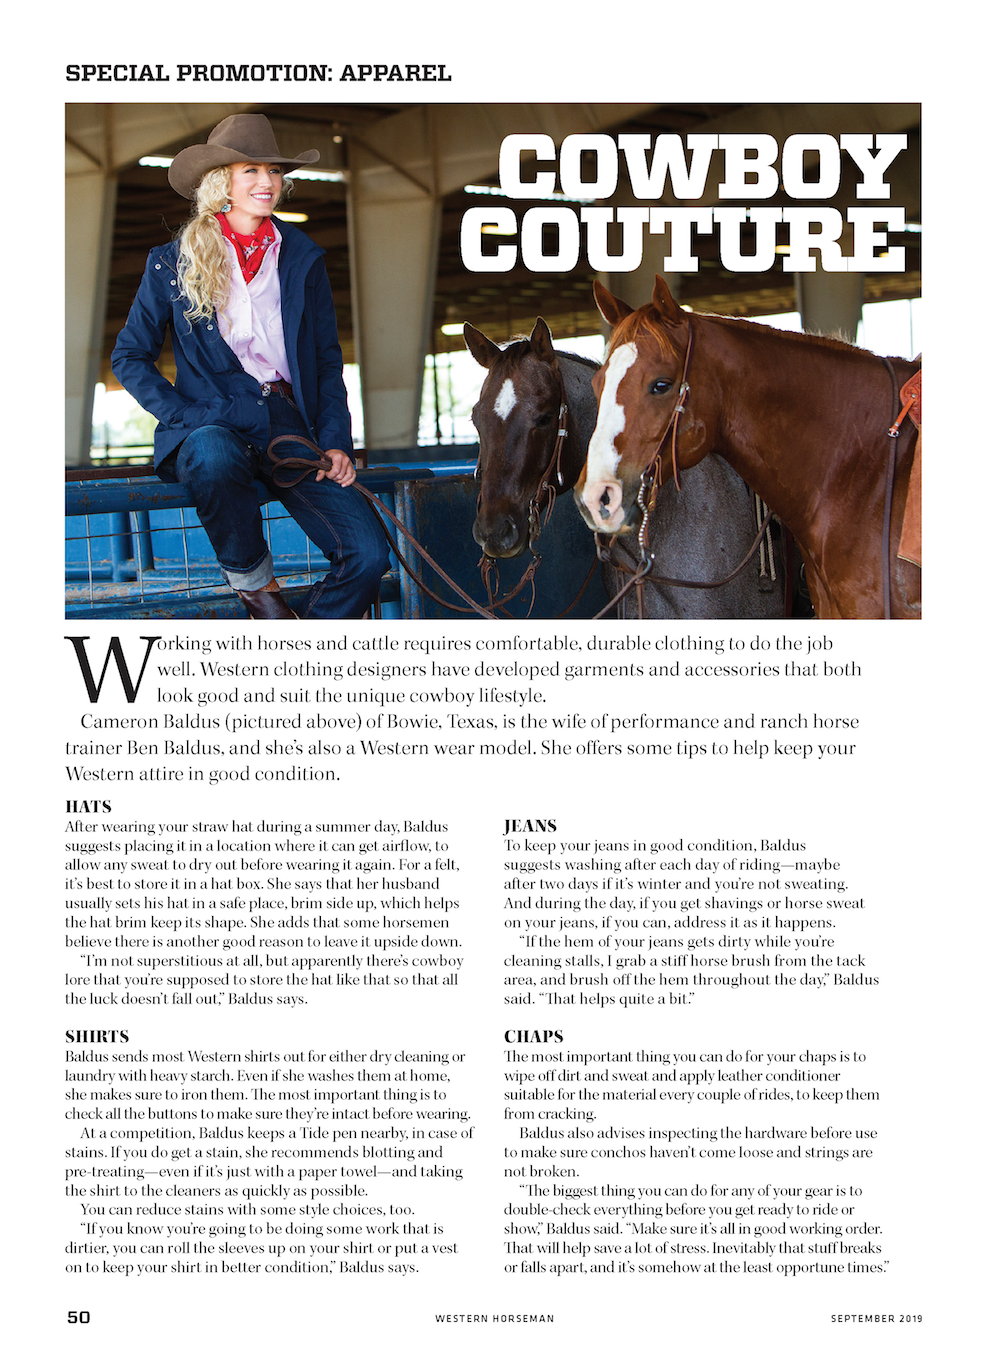 Western Horseman Magazine September 2019 issue Special apparel promotion section